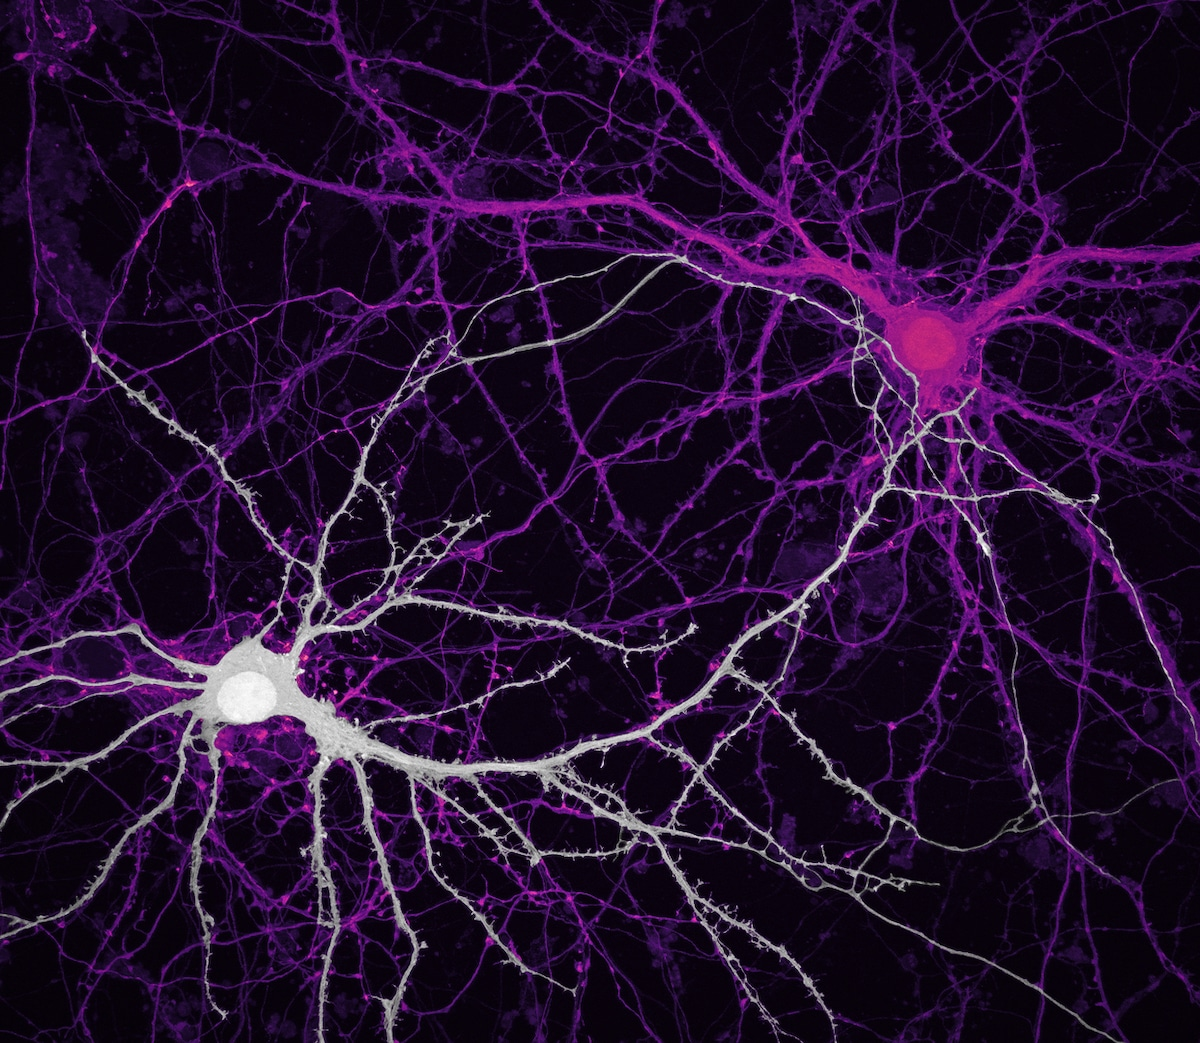 Confocal Image of Connections between hippocampal neurons